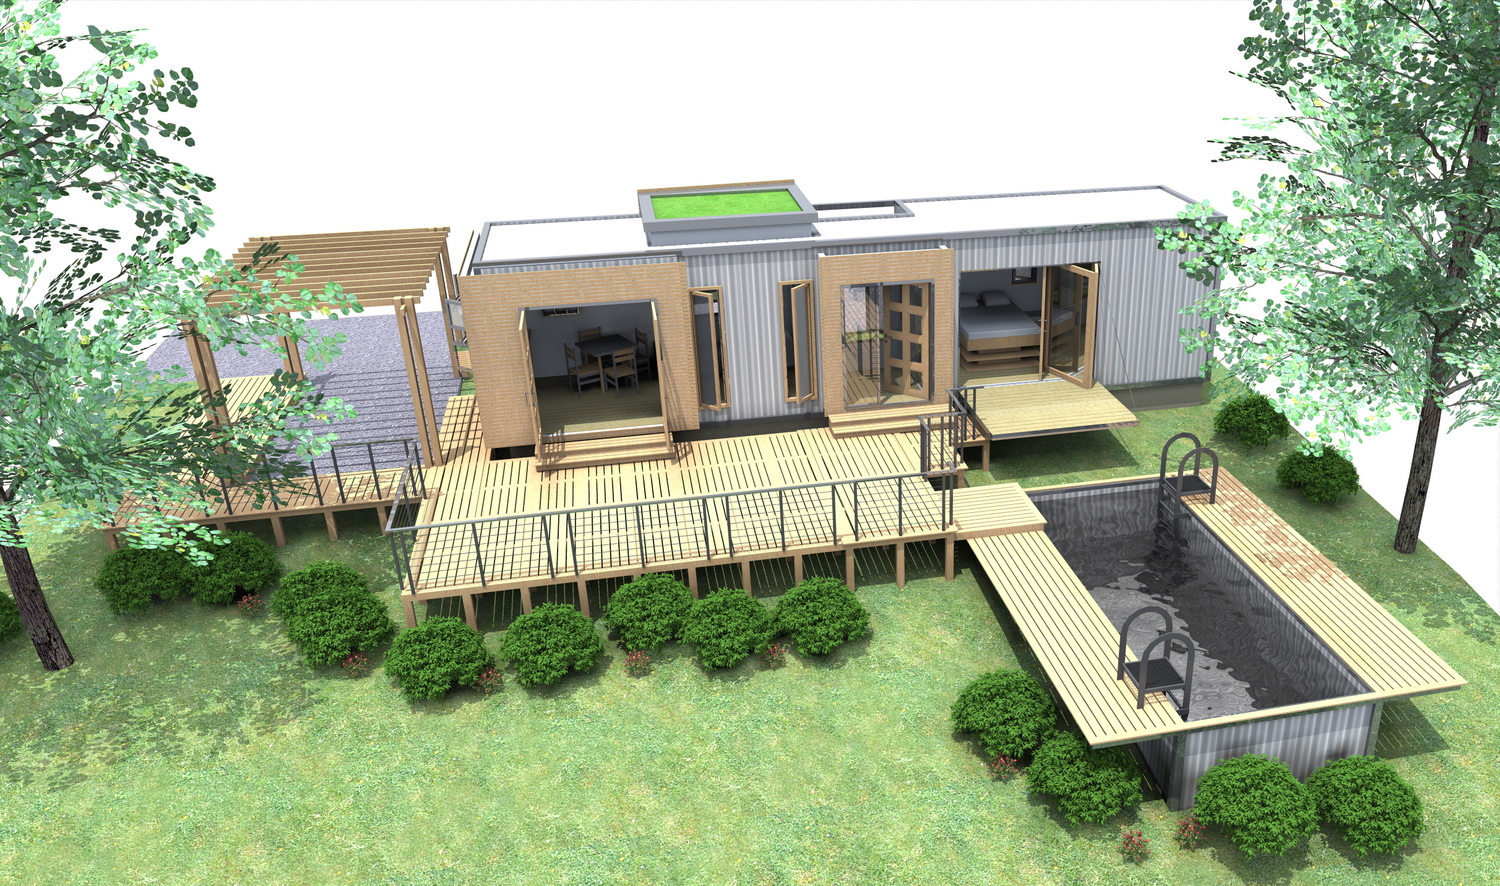 Shipping container homes june 2013 for Containers homes plans